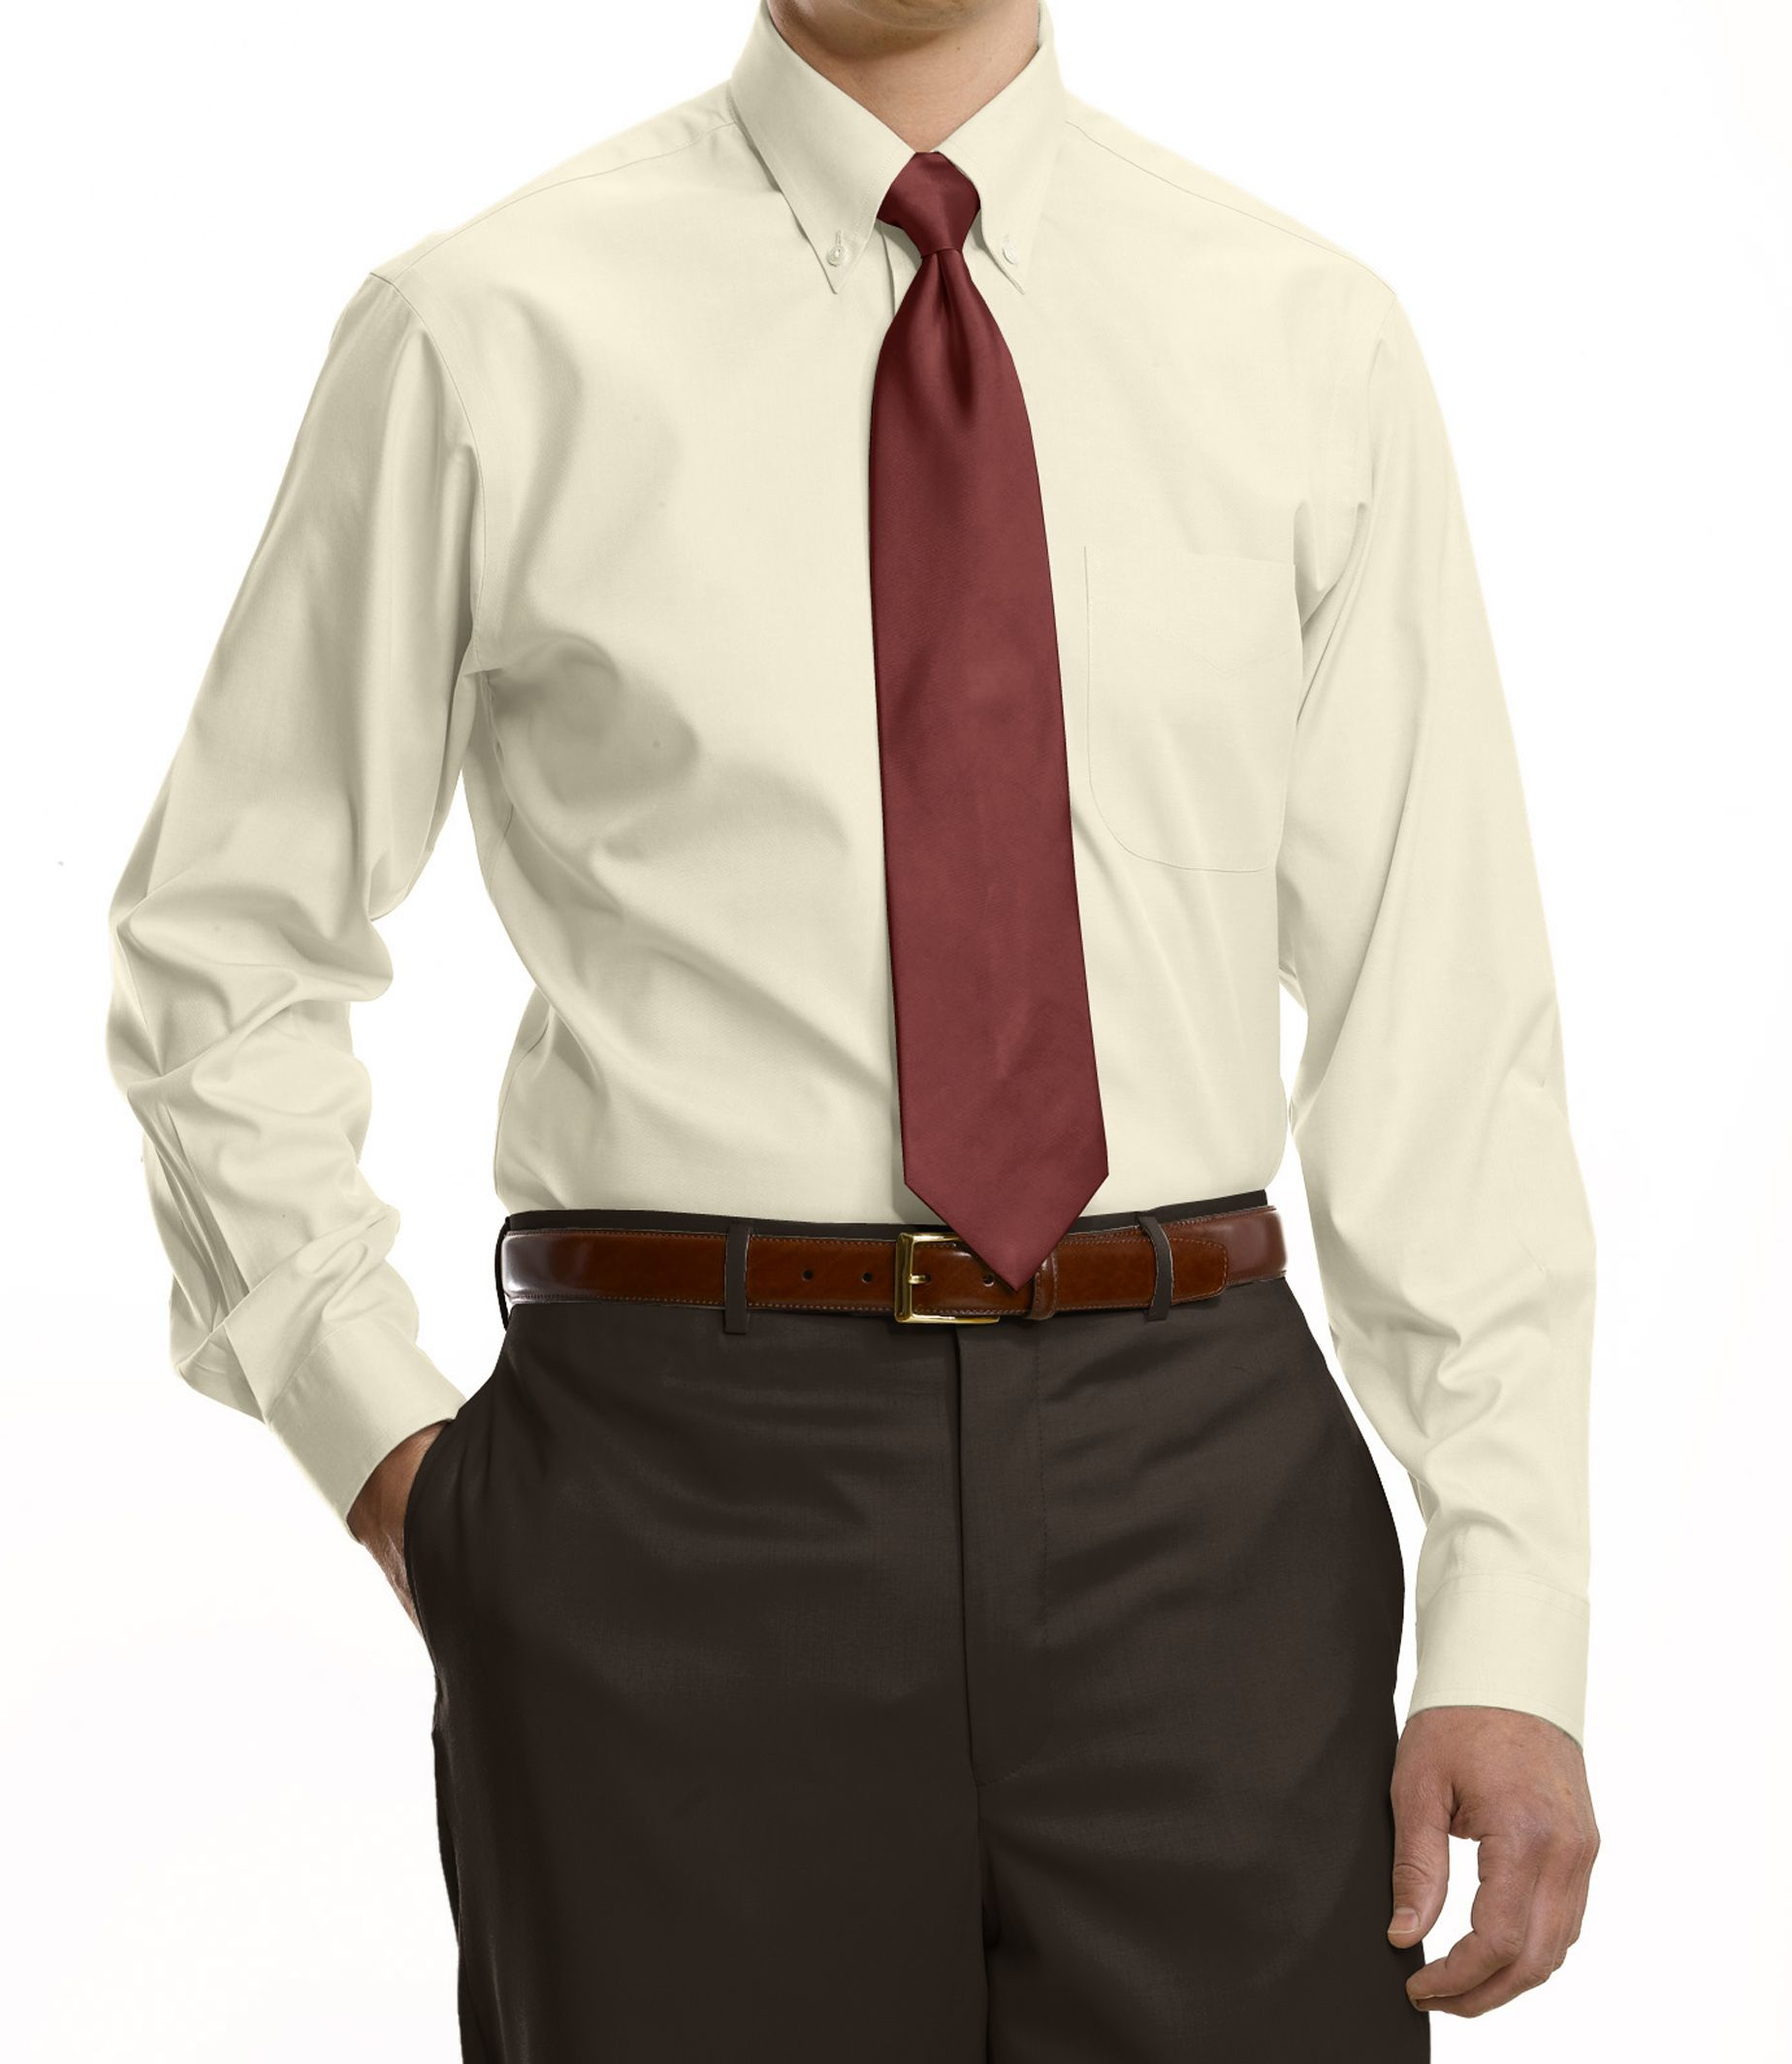 Jos a bank traveler collection tailored fit button down for Dress shirts for tall men